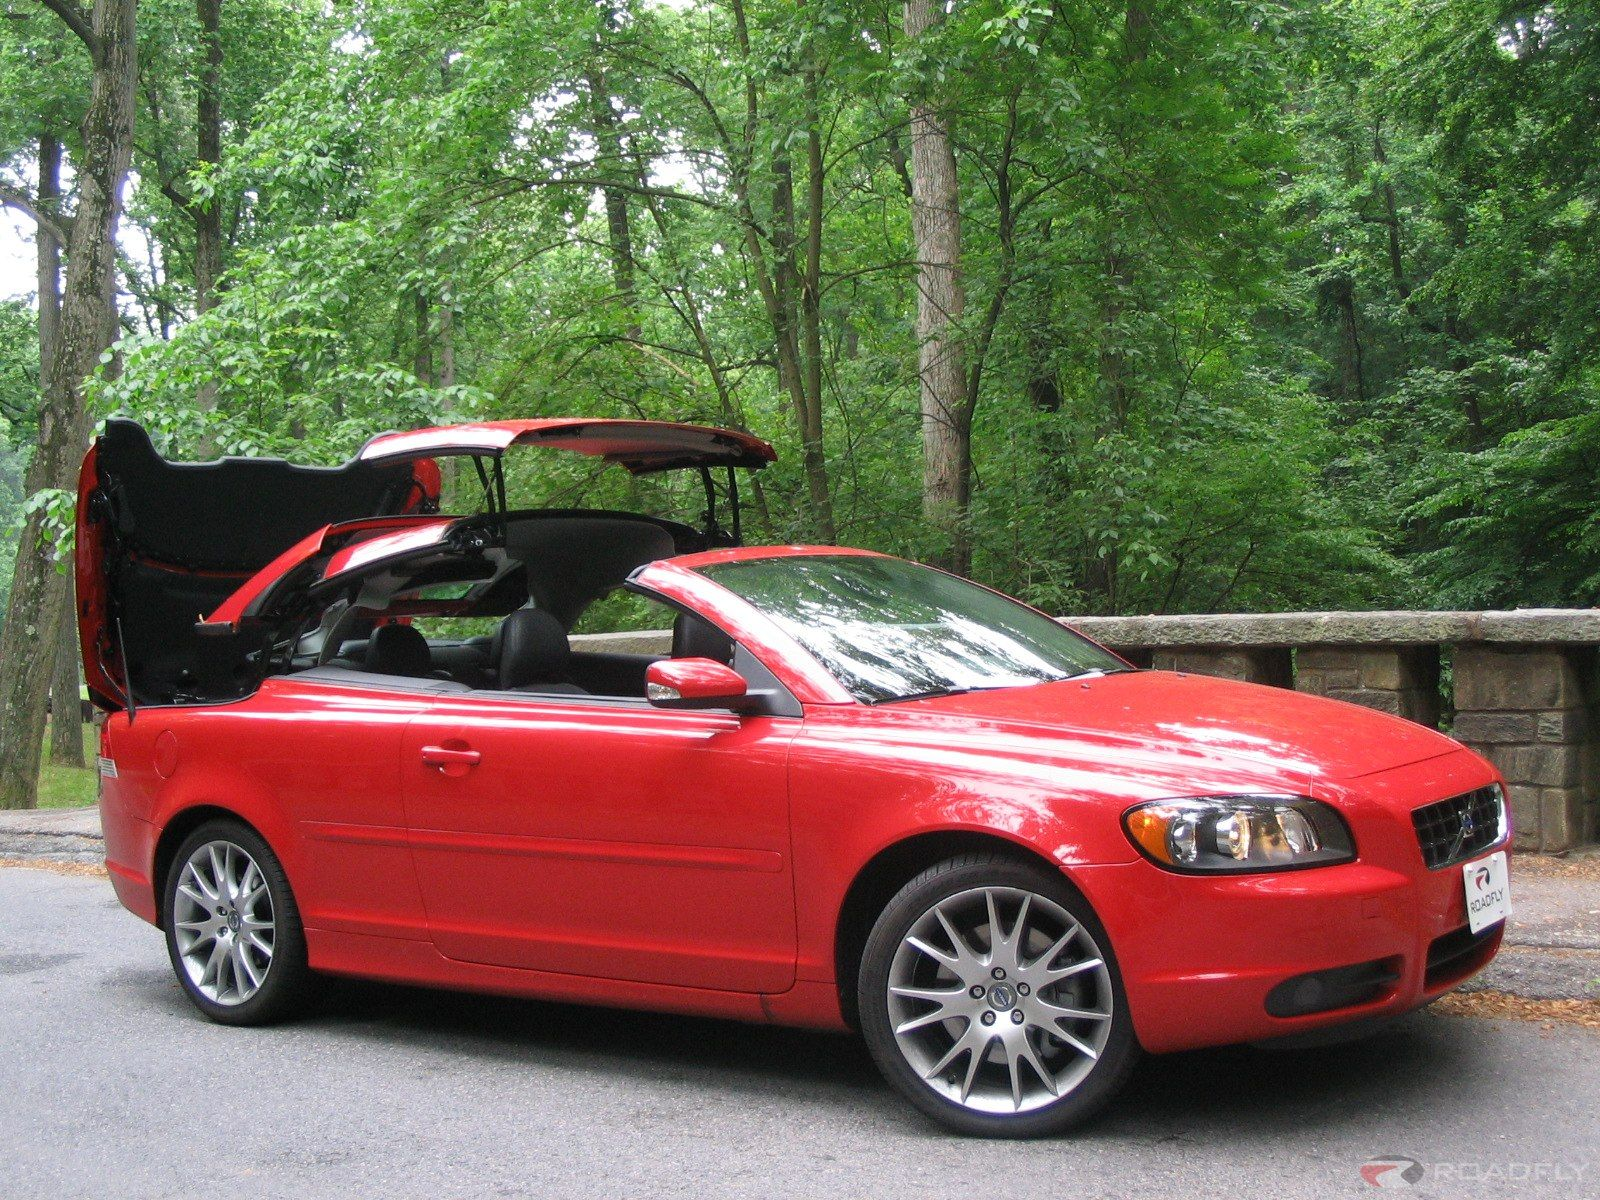 volvo c70 hard top convertible cars volvo c70 volvo. Black Bedroom Furniture Sets. Home Design Ideas